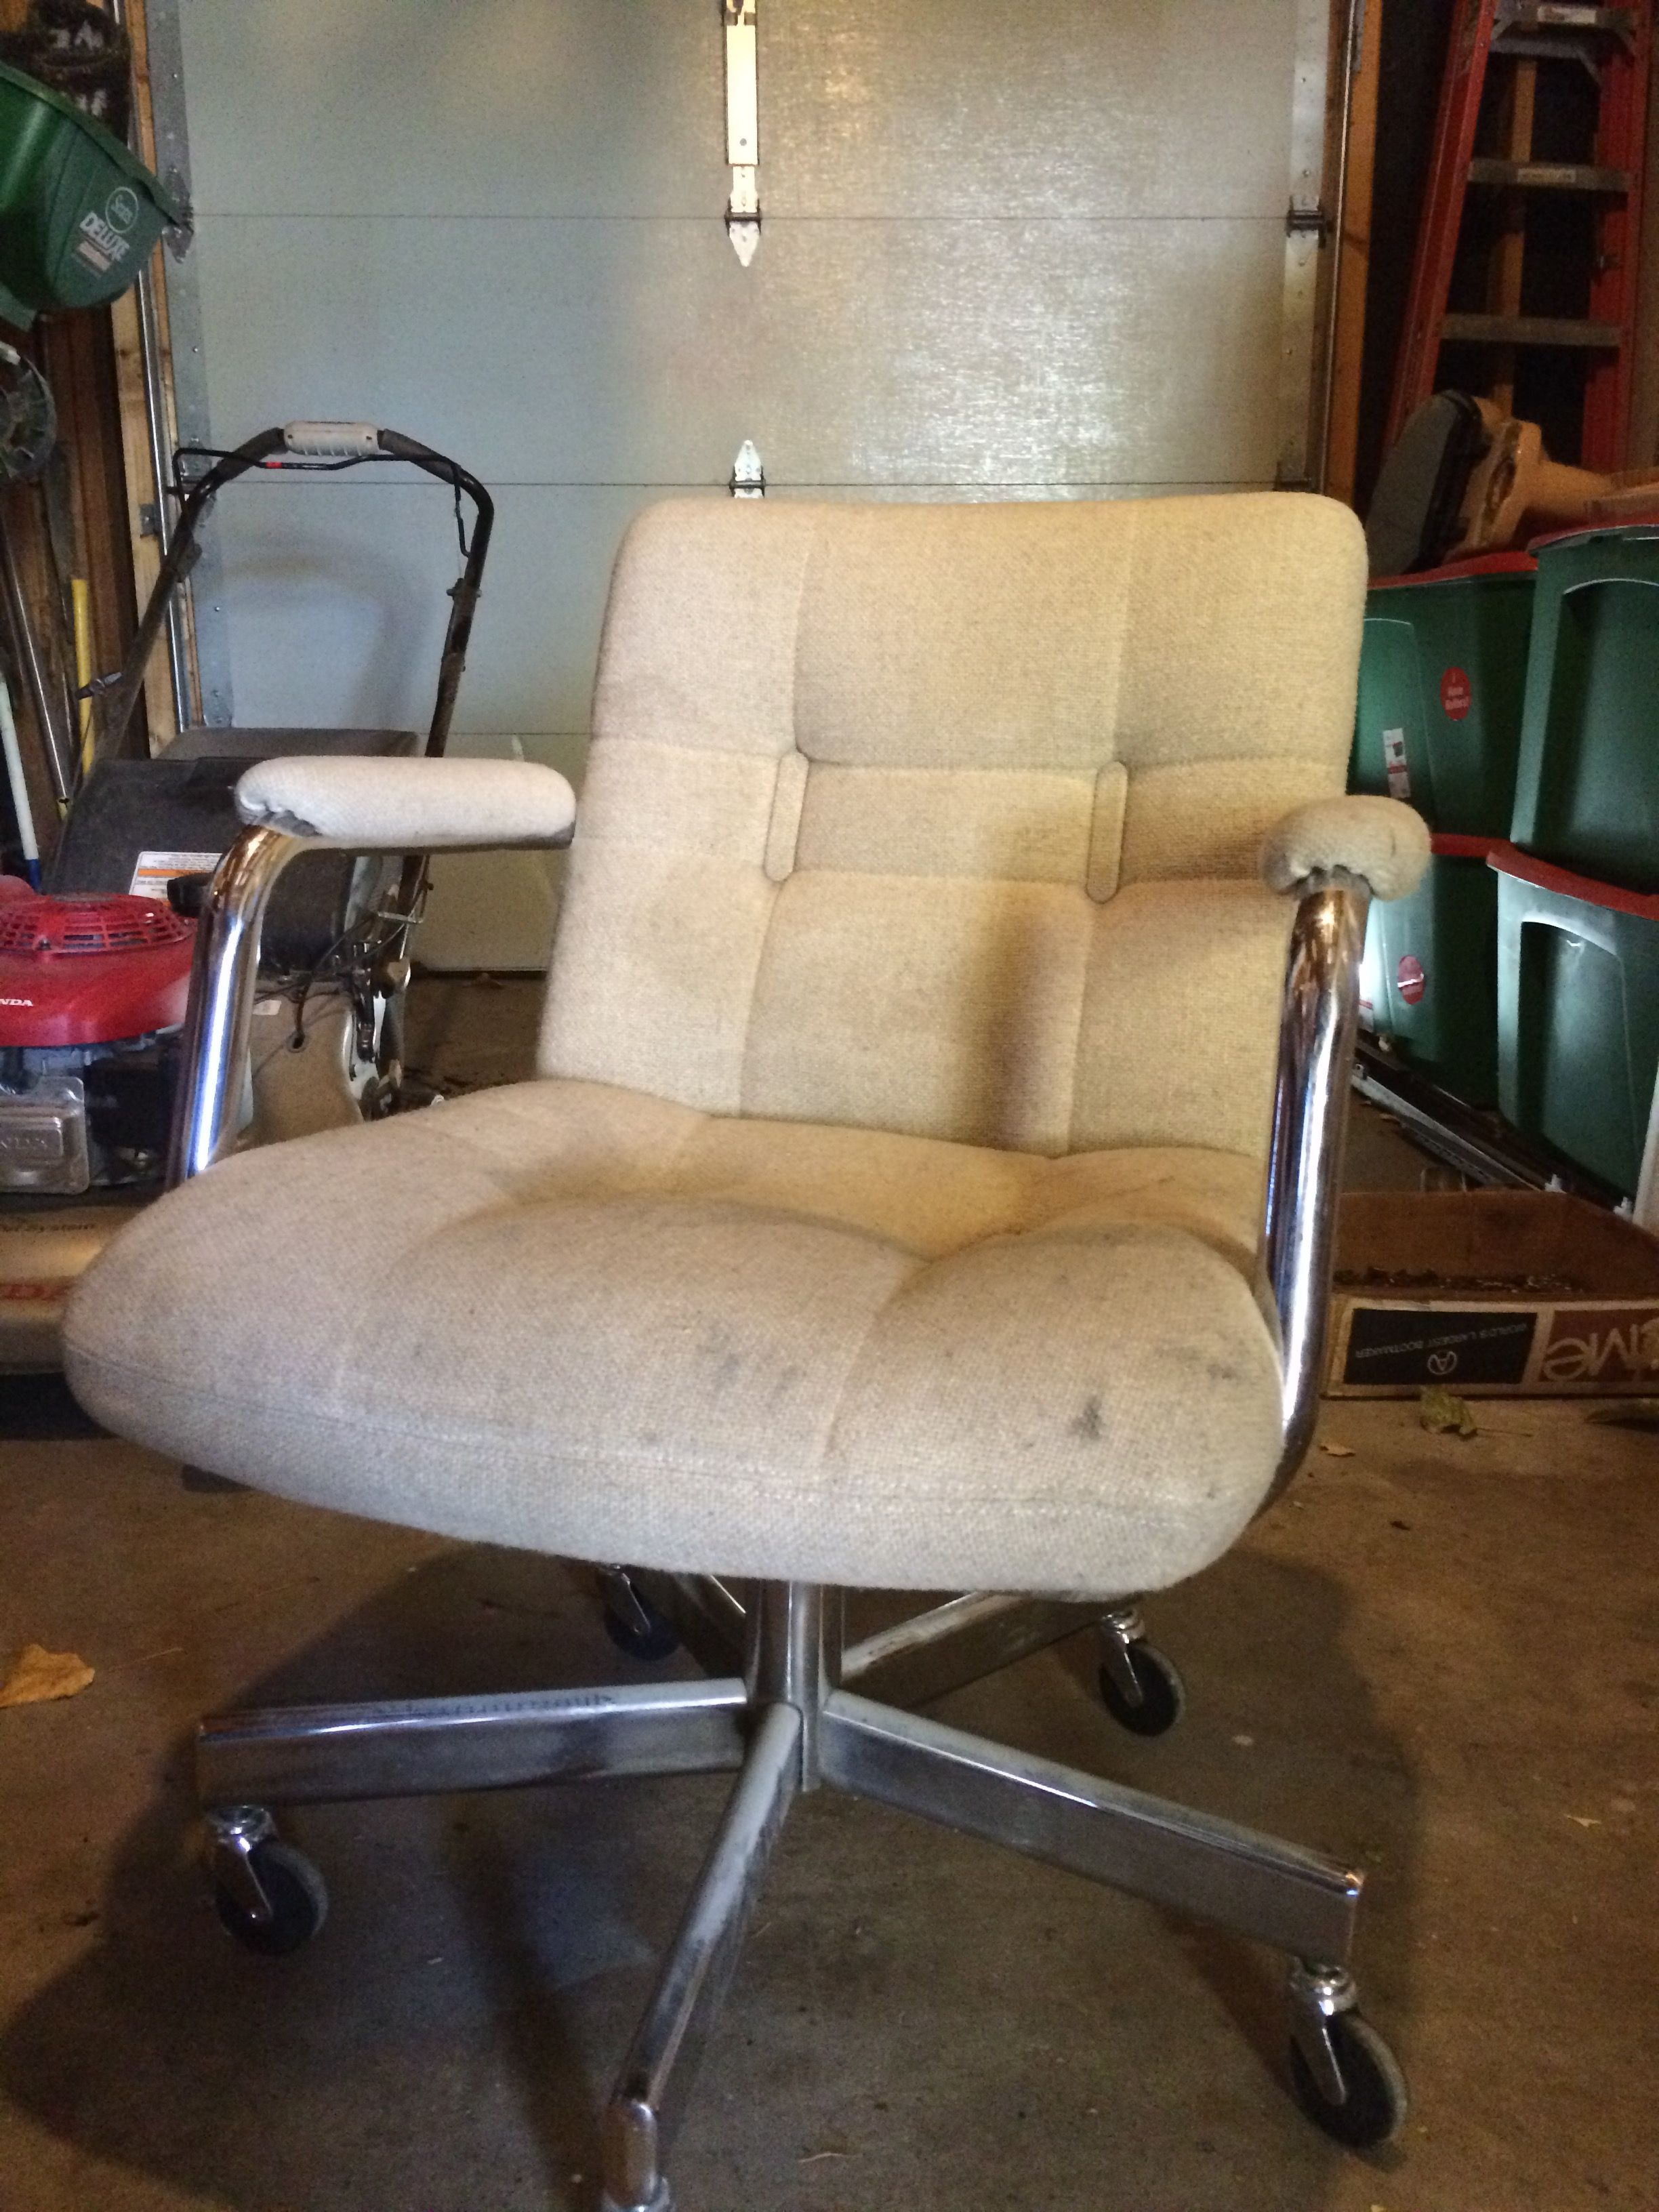 60s Office Chair 10 On Craigslist Chair Office Chair Furniture